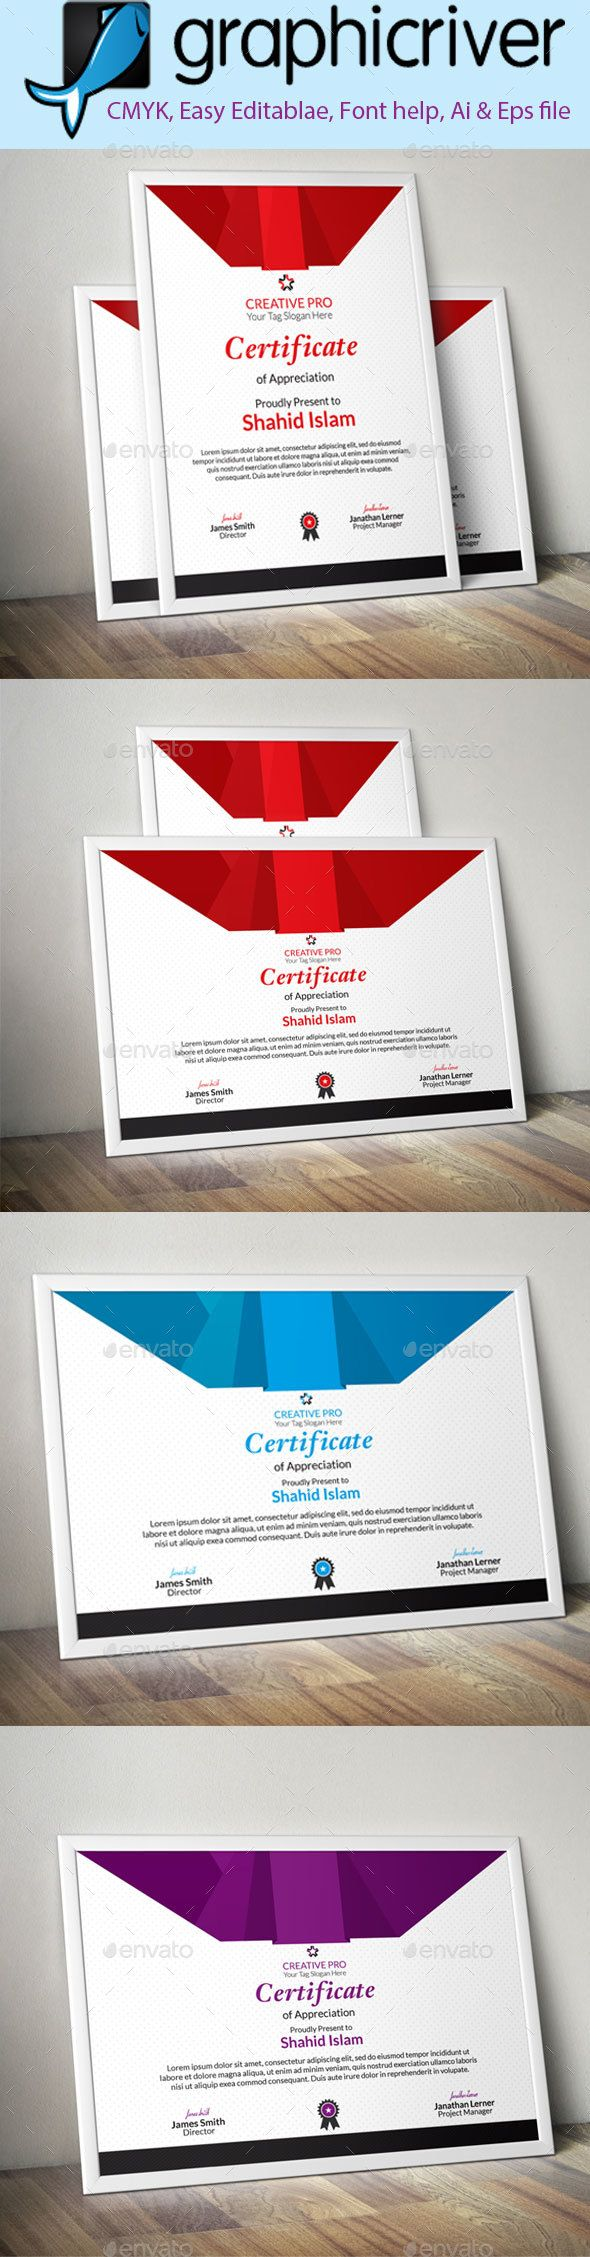 noc letter format%0A Easy to Edit CMYK Color     DPI High Resolution A  Size   bleed setting   Print